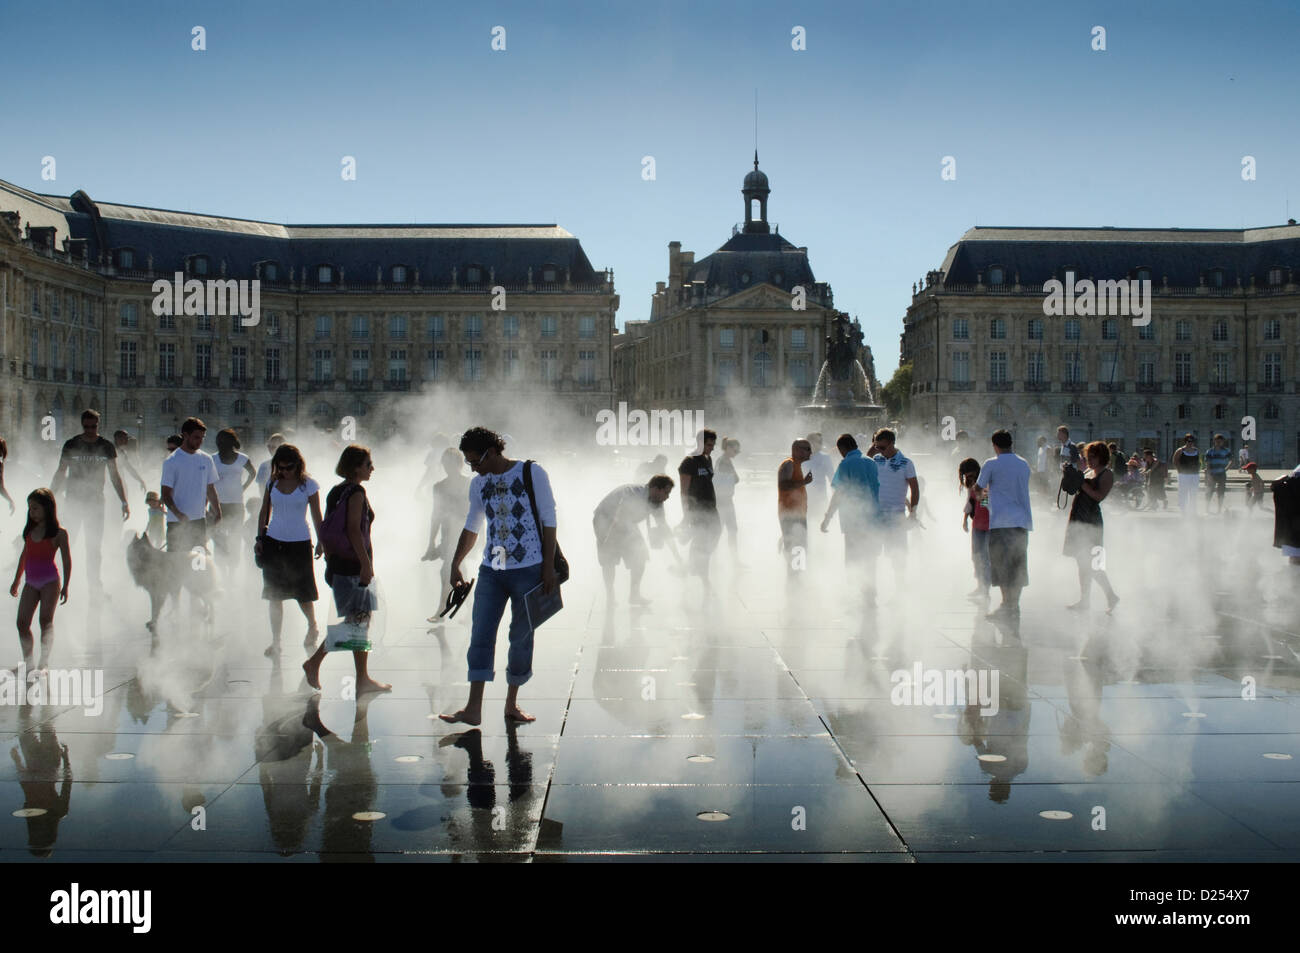 People walking in the spray from the words largest water mirror at the Place de la Bourse, Bordeaux, France - Stock Image